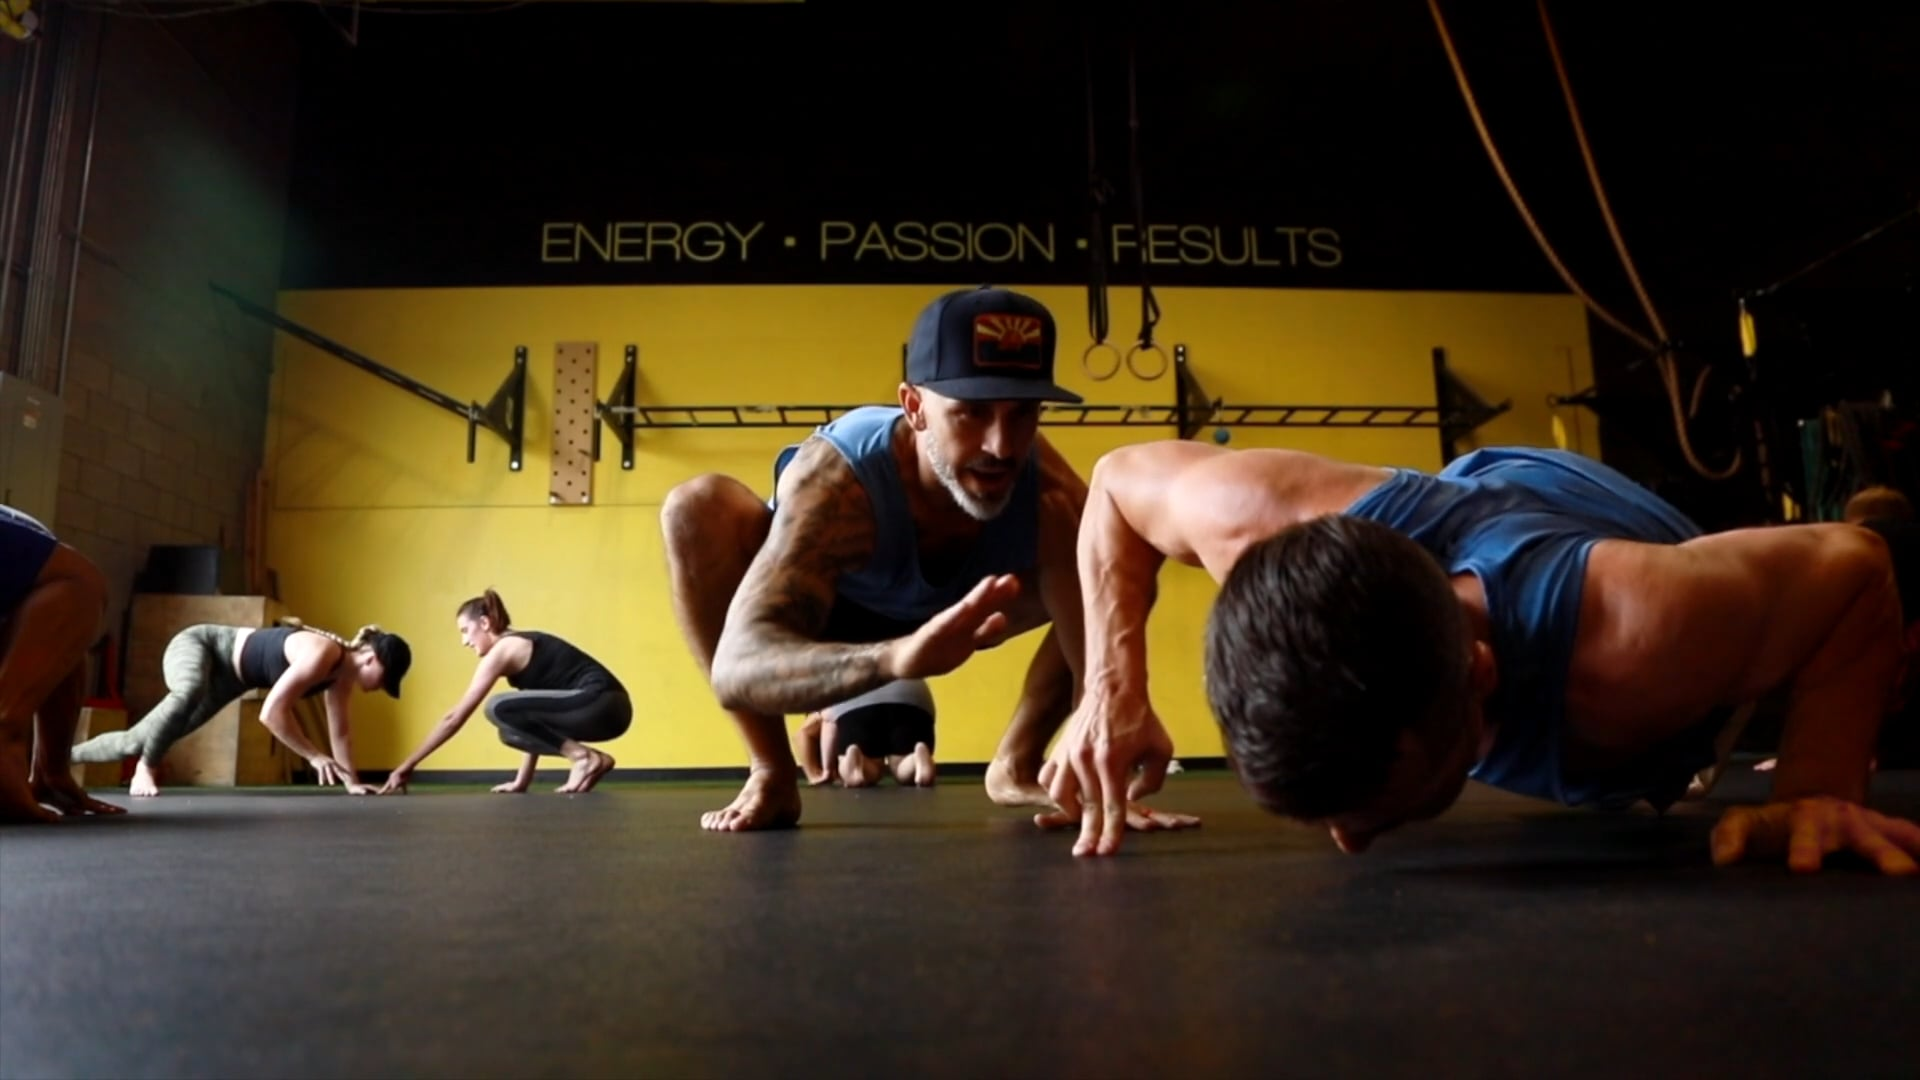 Premier Fitness Systems